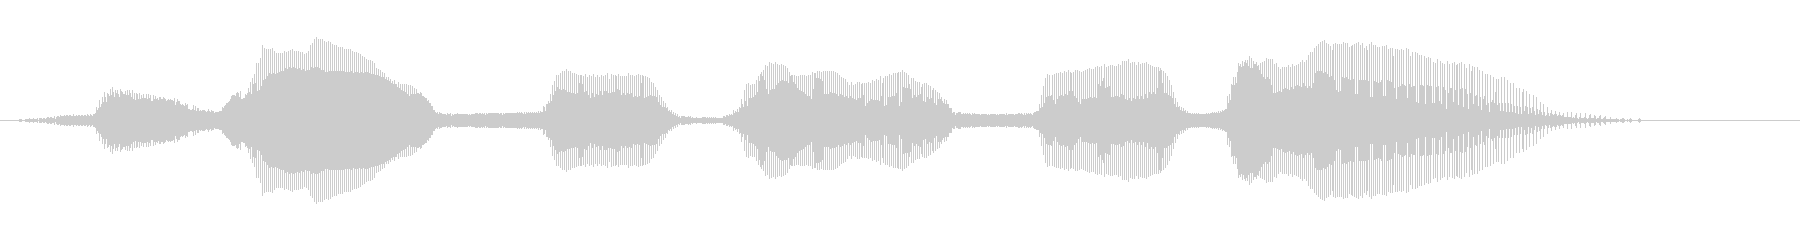 [2022 (year)] By 6 year old girl's unreproduced waveform